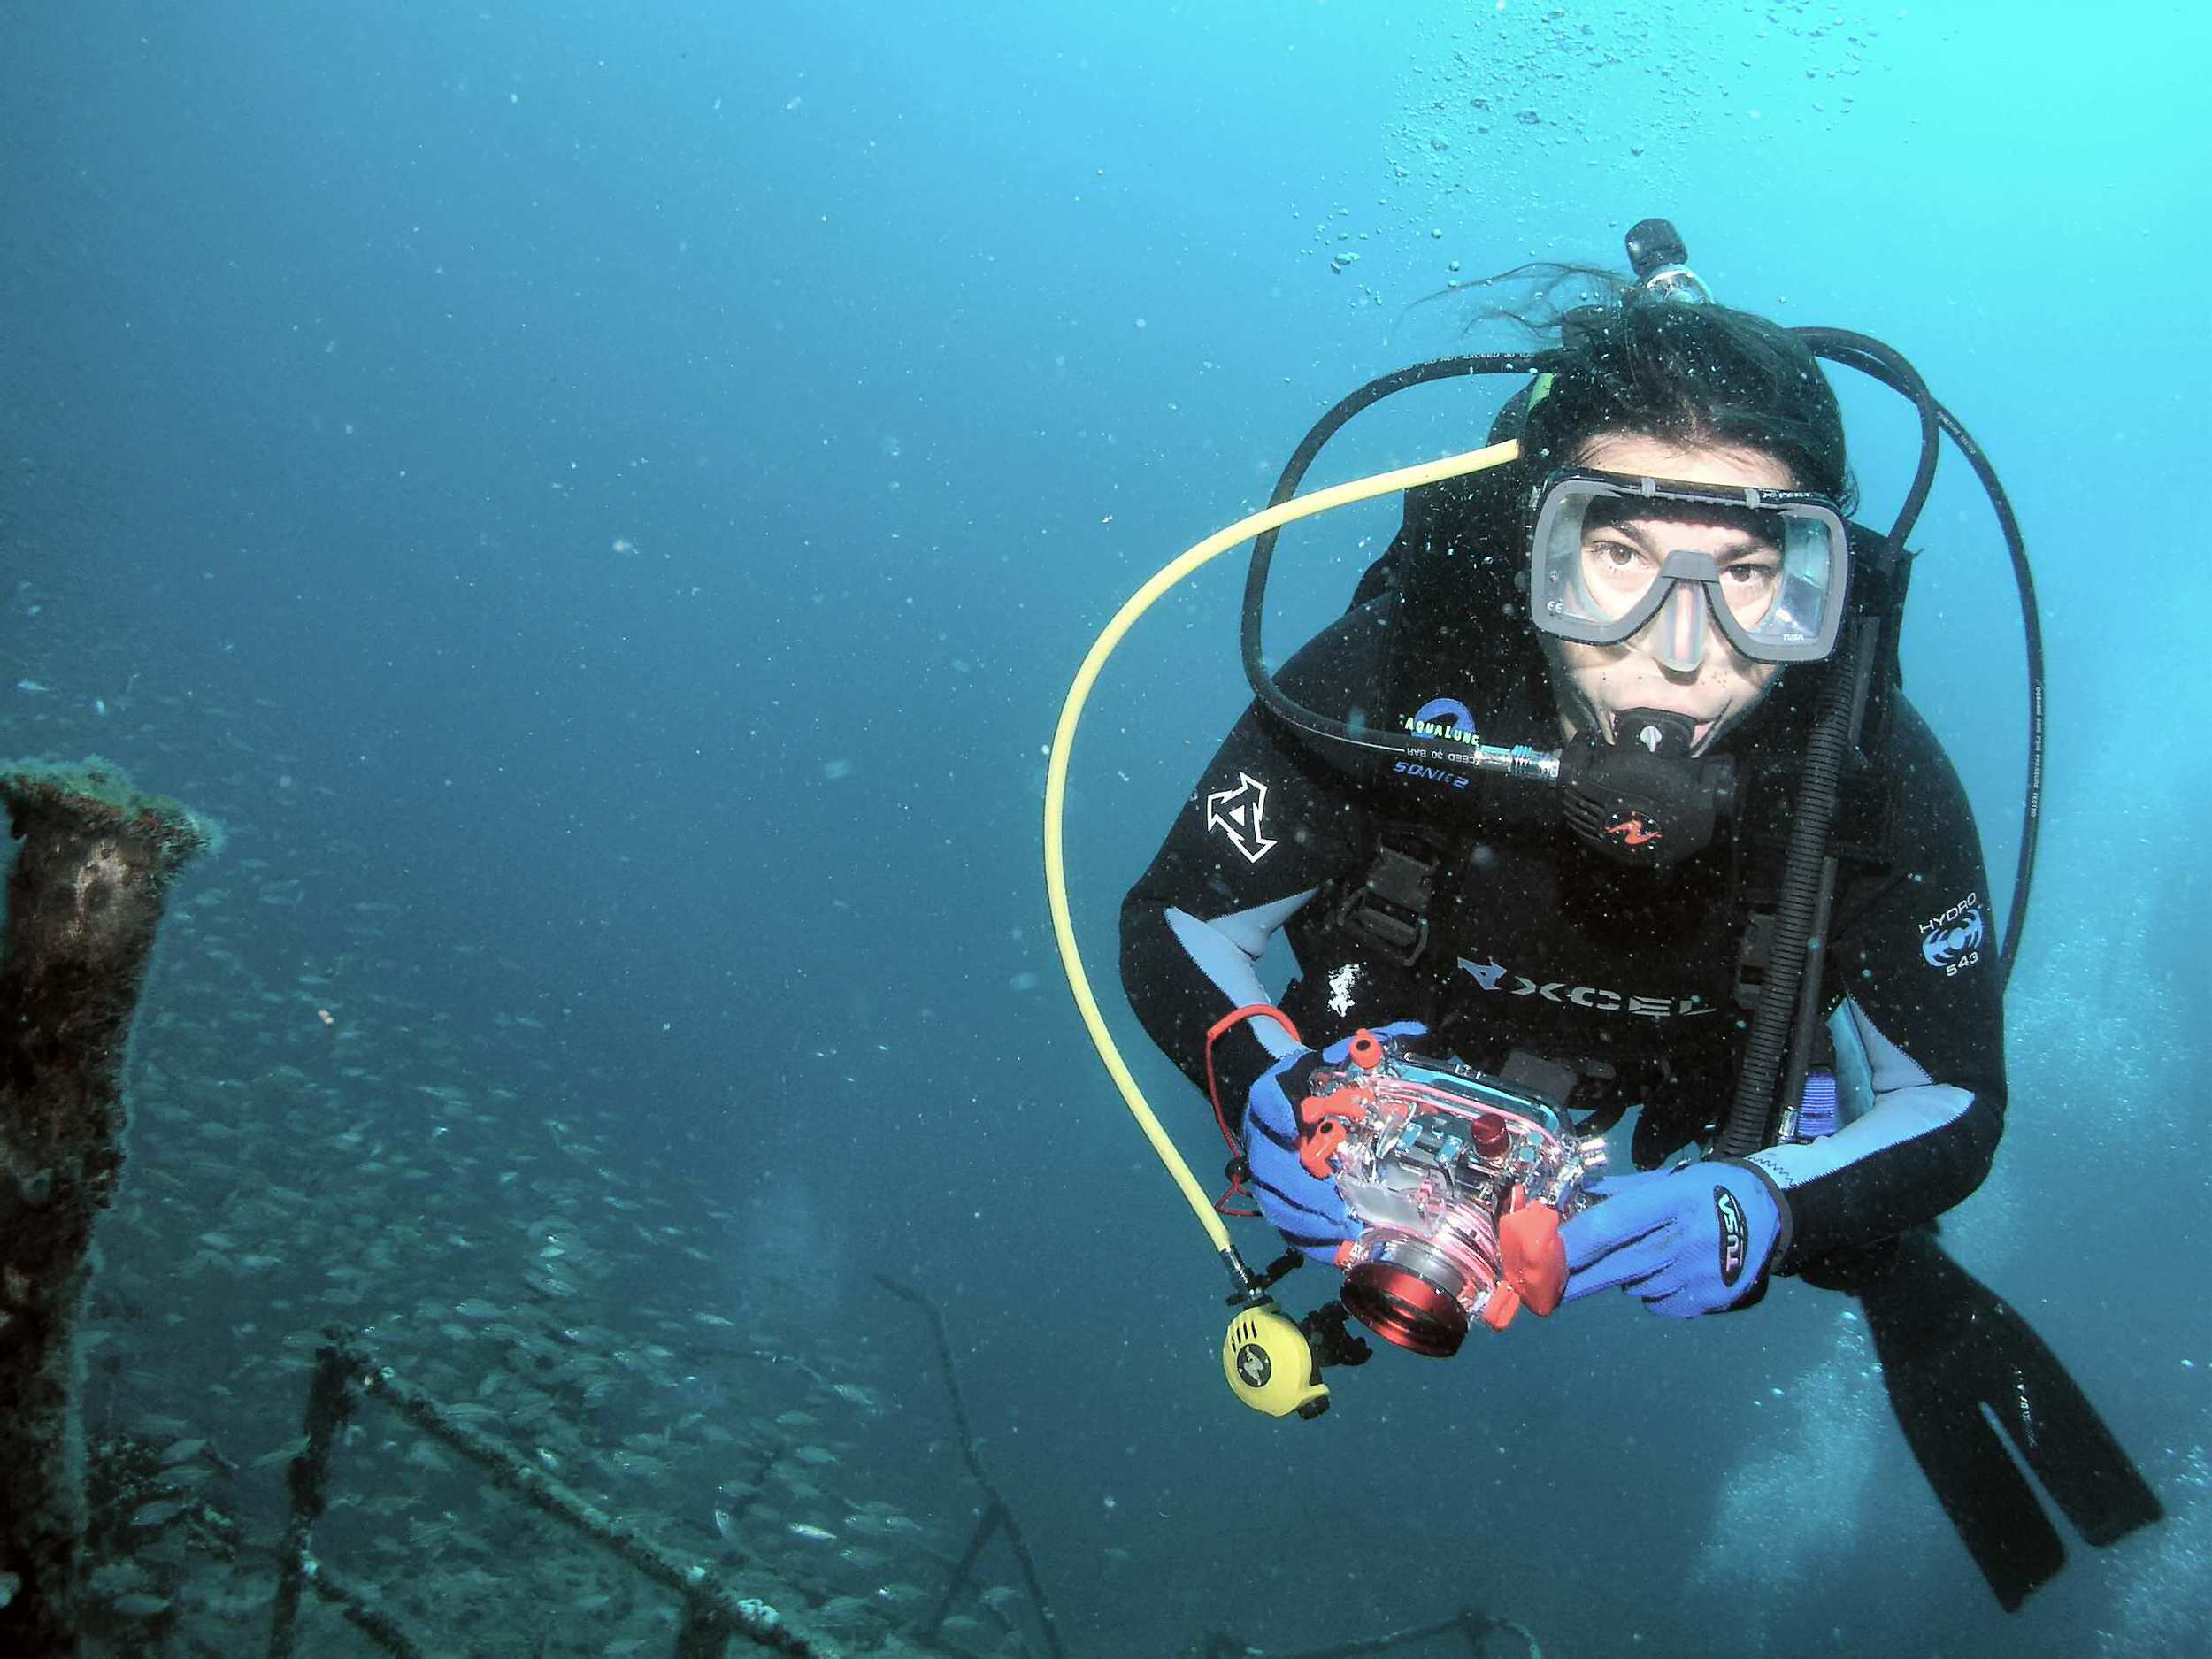 Besides grilling and blending spices, my other passion is to scuba dive. Here I am diving a WWII wreckoff Morehead City, NC.German submarines, sand tiger sharks, and lion fish---always plenty to see.